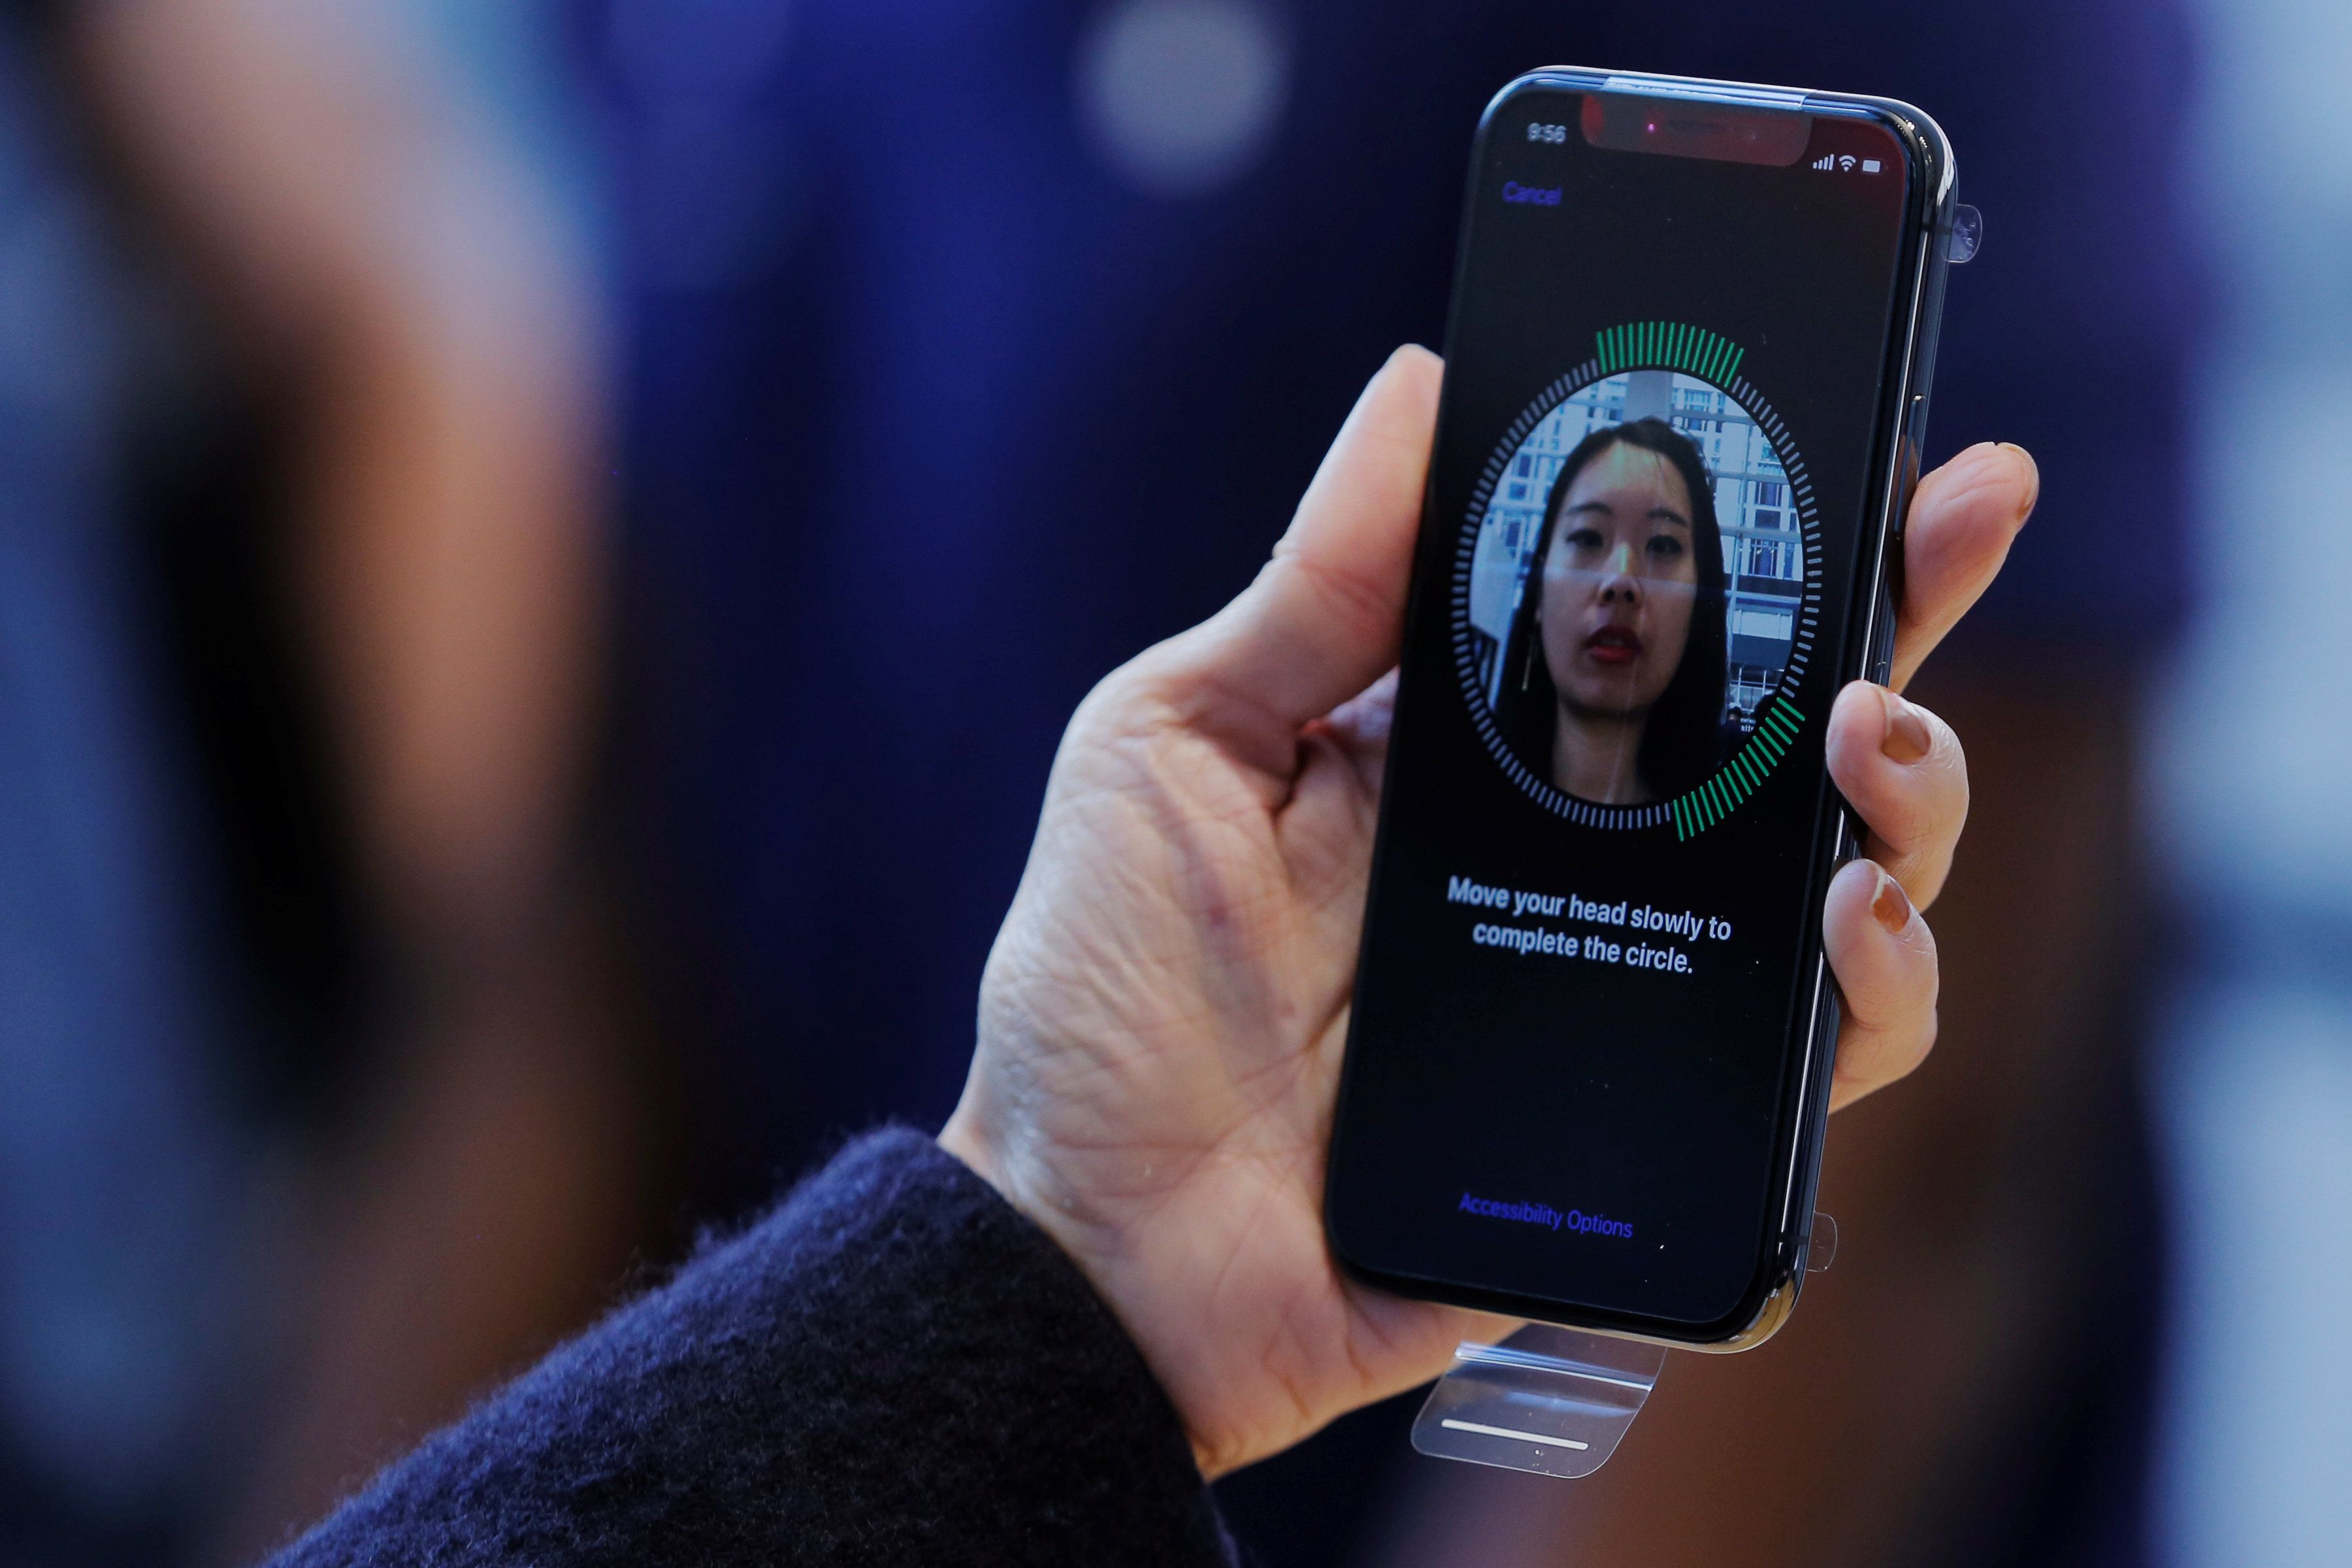 Worker Says Colleague Faked Out Her iPhone X's Facial Recognition